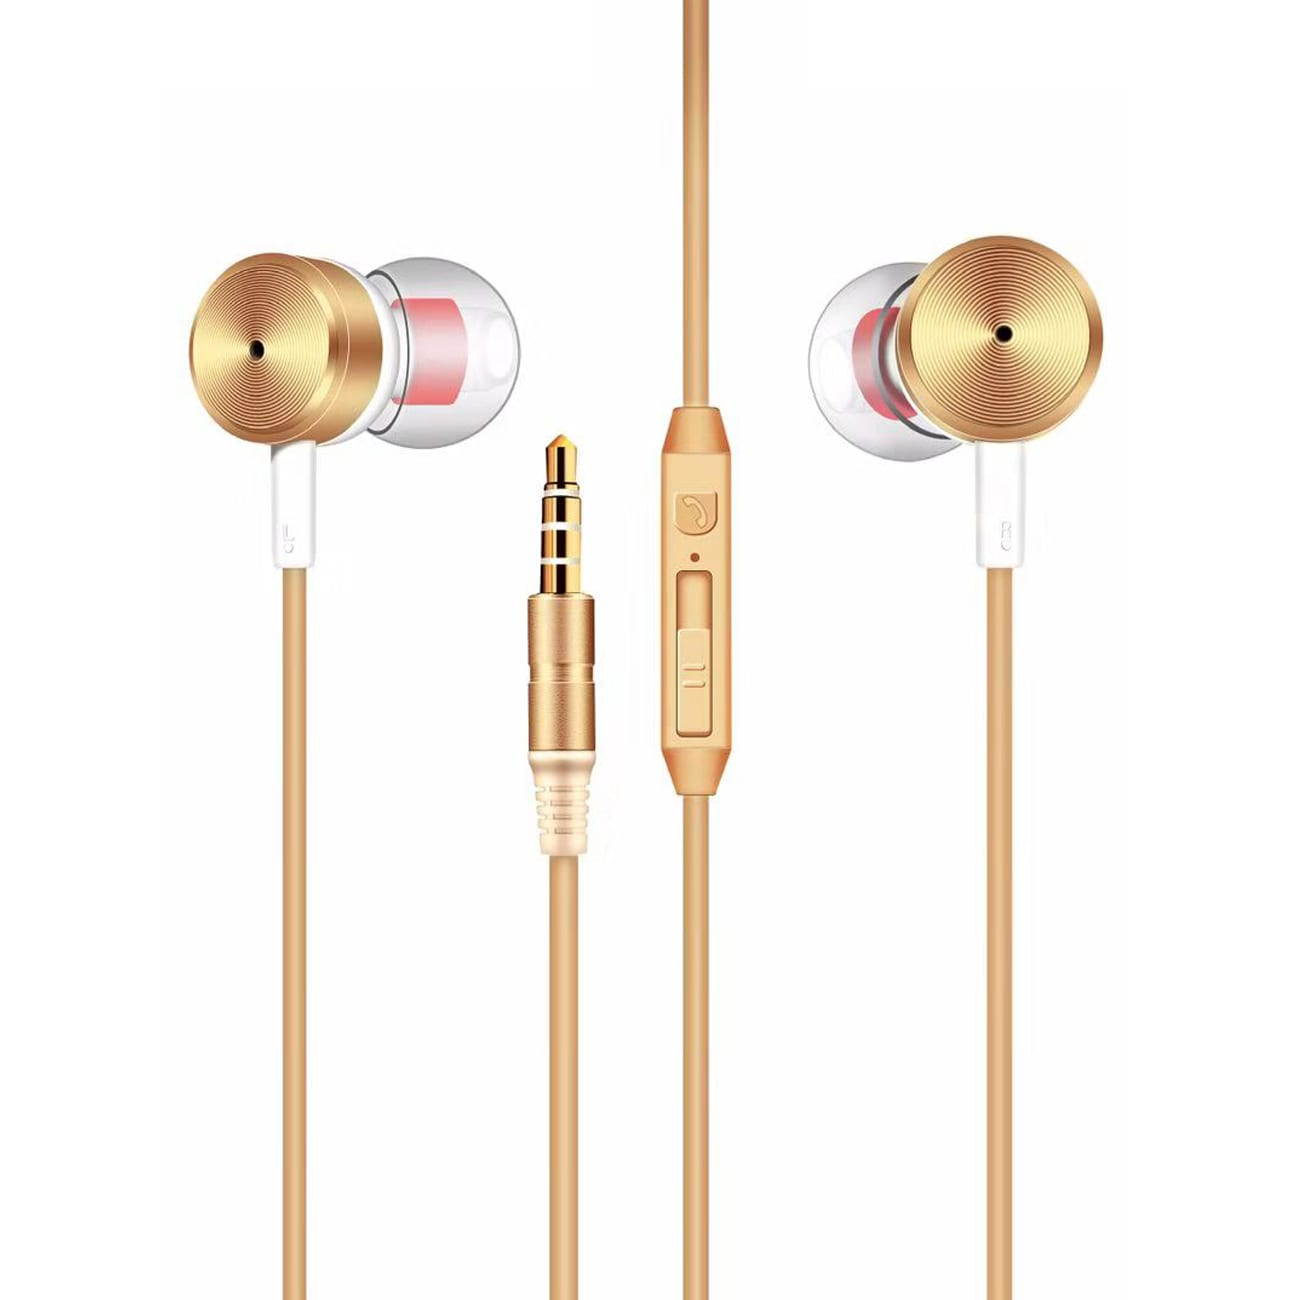 MT-H10 Universal Earphones in Gold